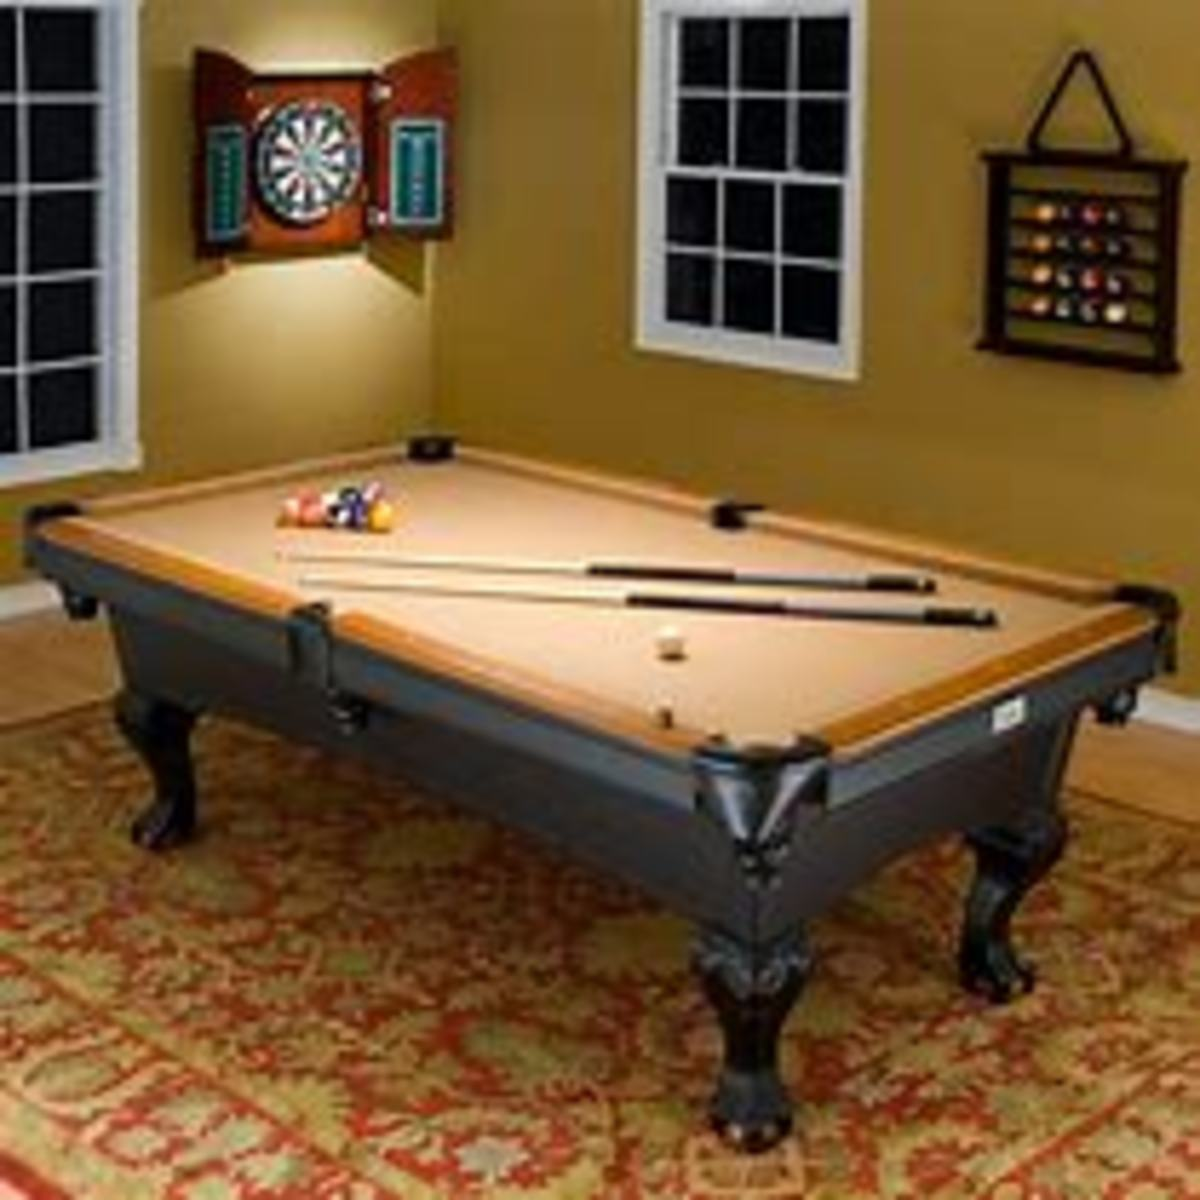 The Dinkleton Bars famous and timeless Pool Table. Comes complete with its own Dart Board and Pool Rack